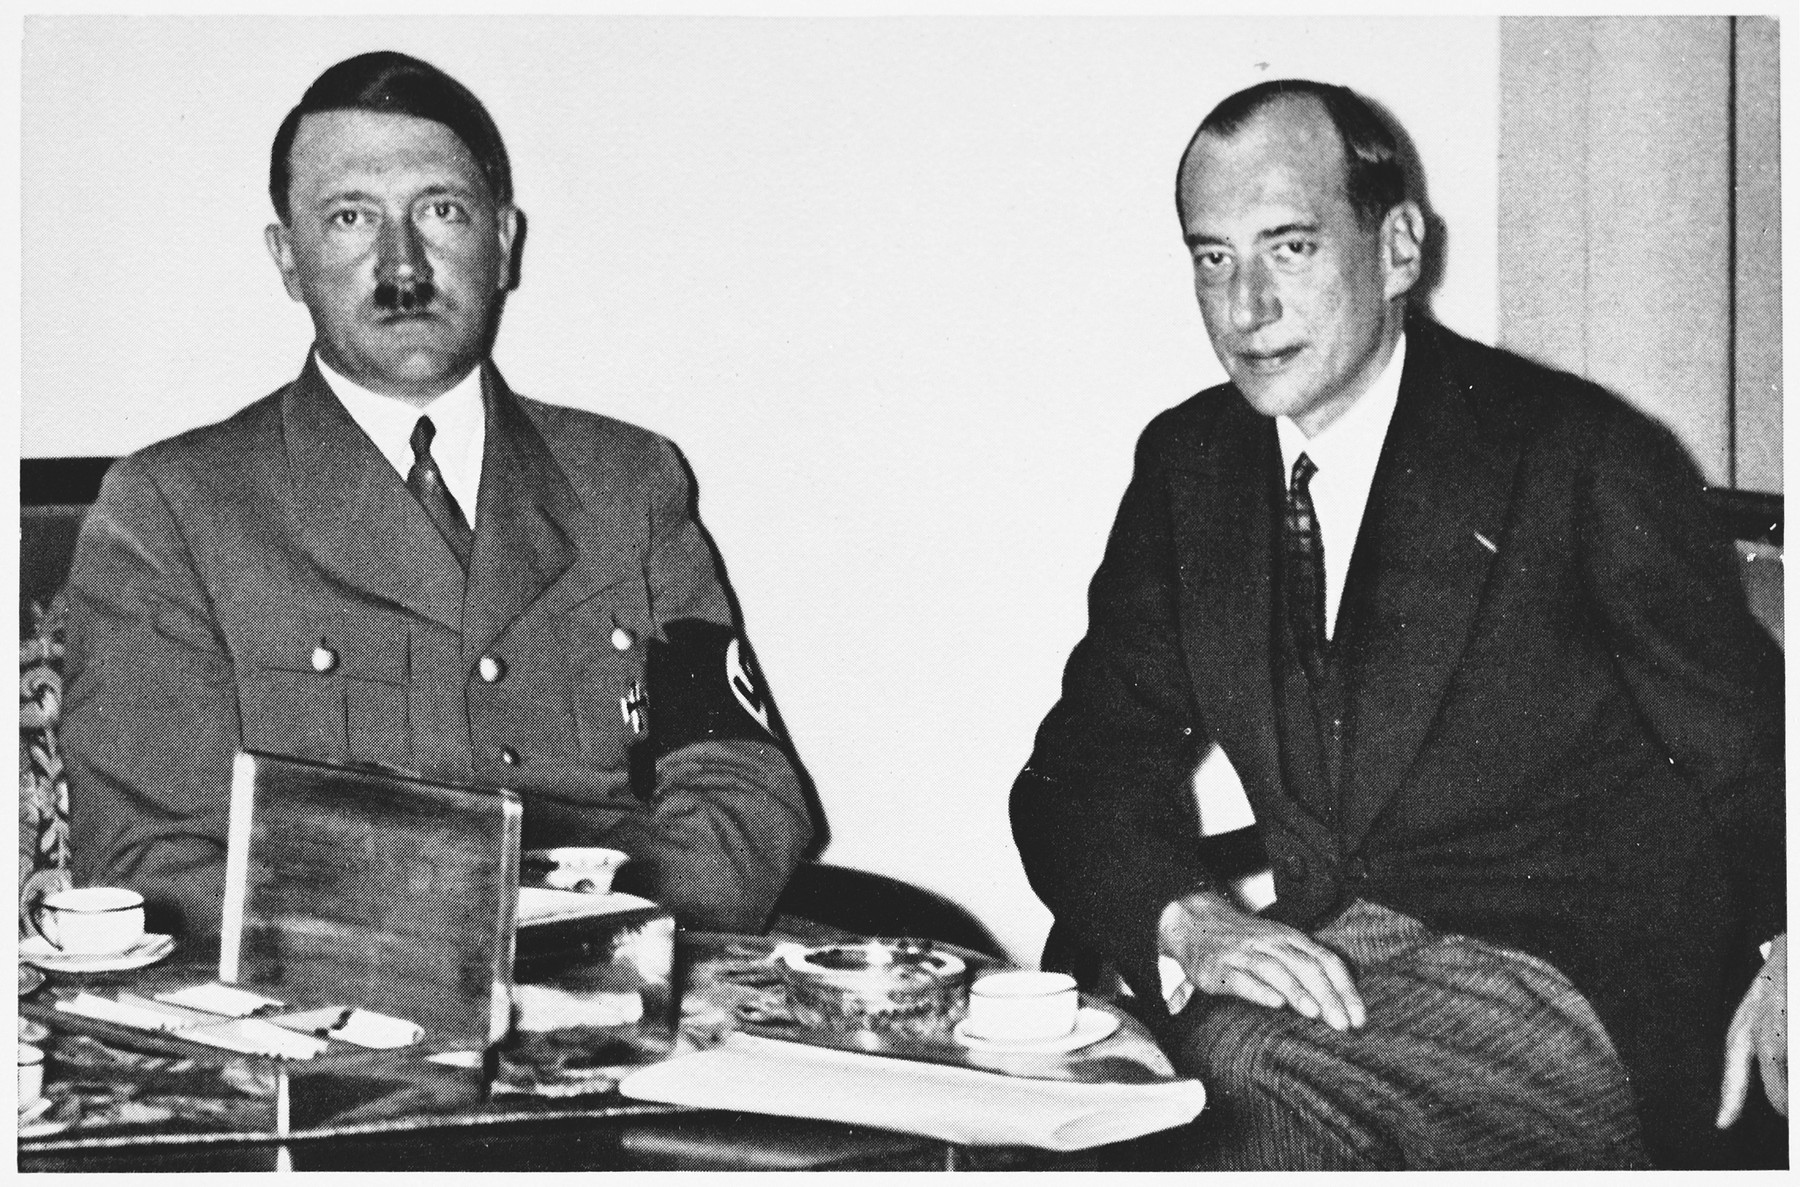 Adolf Hitler meets with the Polish Foreign Minister Jozef Beck.   On the back of the photograph is printed an advertisement for a volume of collected photographs of Adolf Hitler, edited by the official NSADAP Reich photographer, Heinrich Hoffmann.